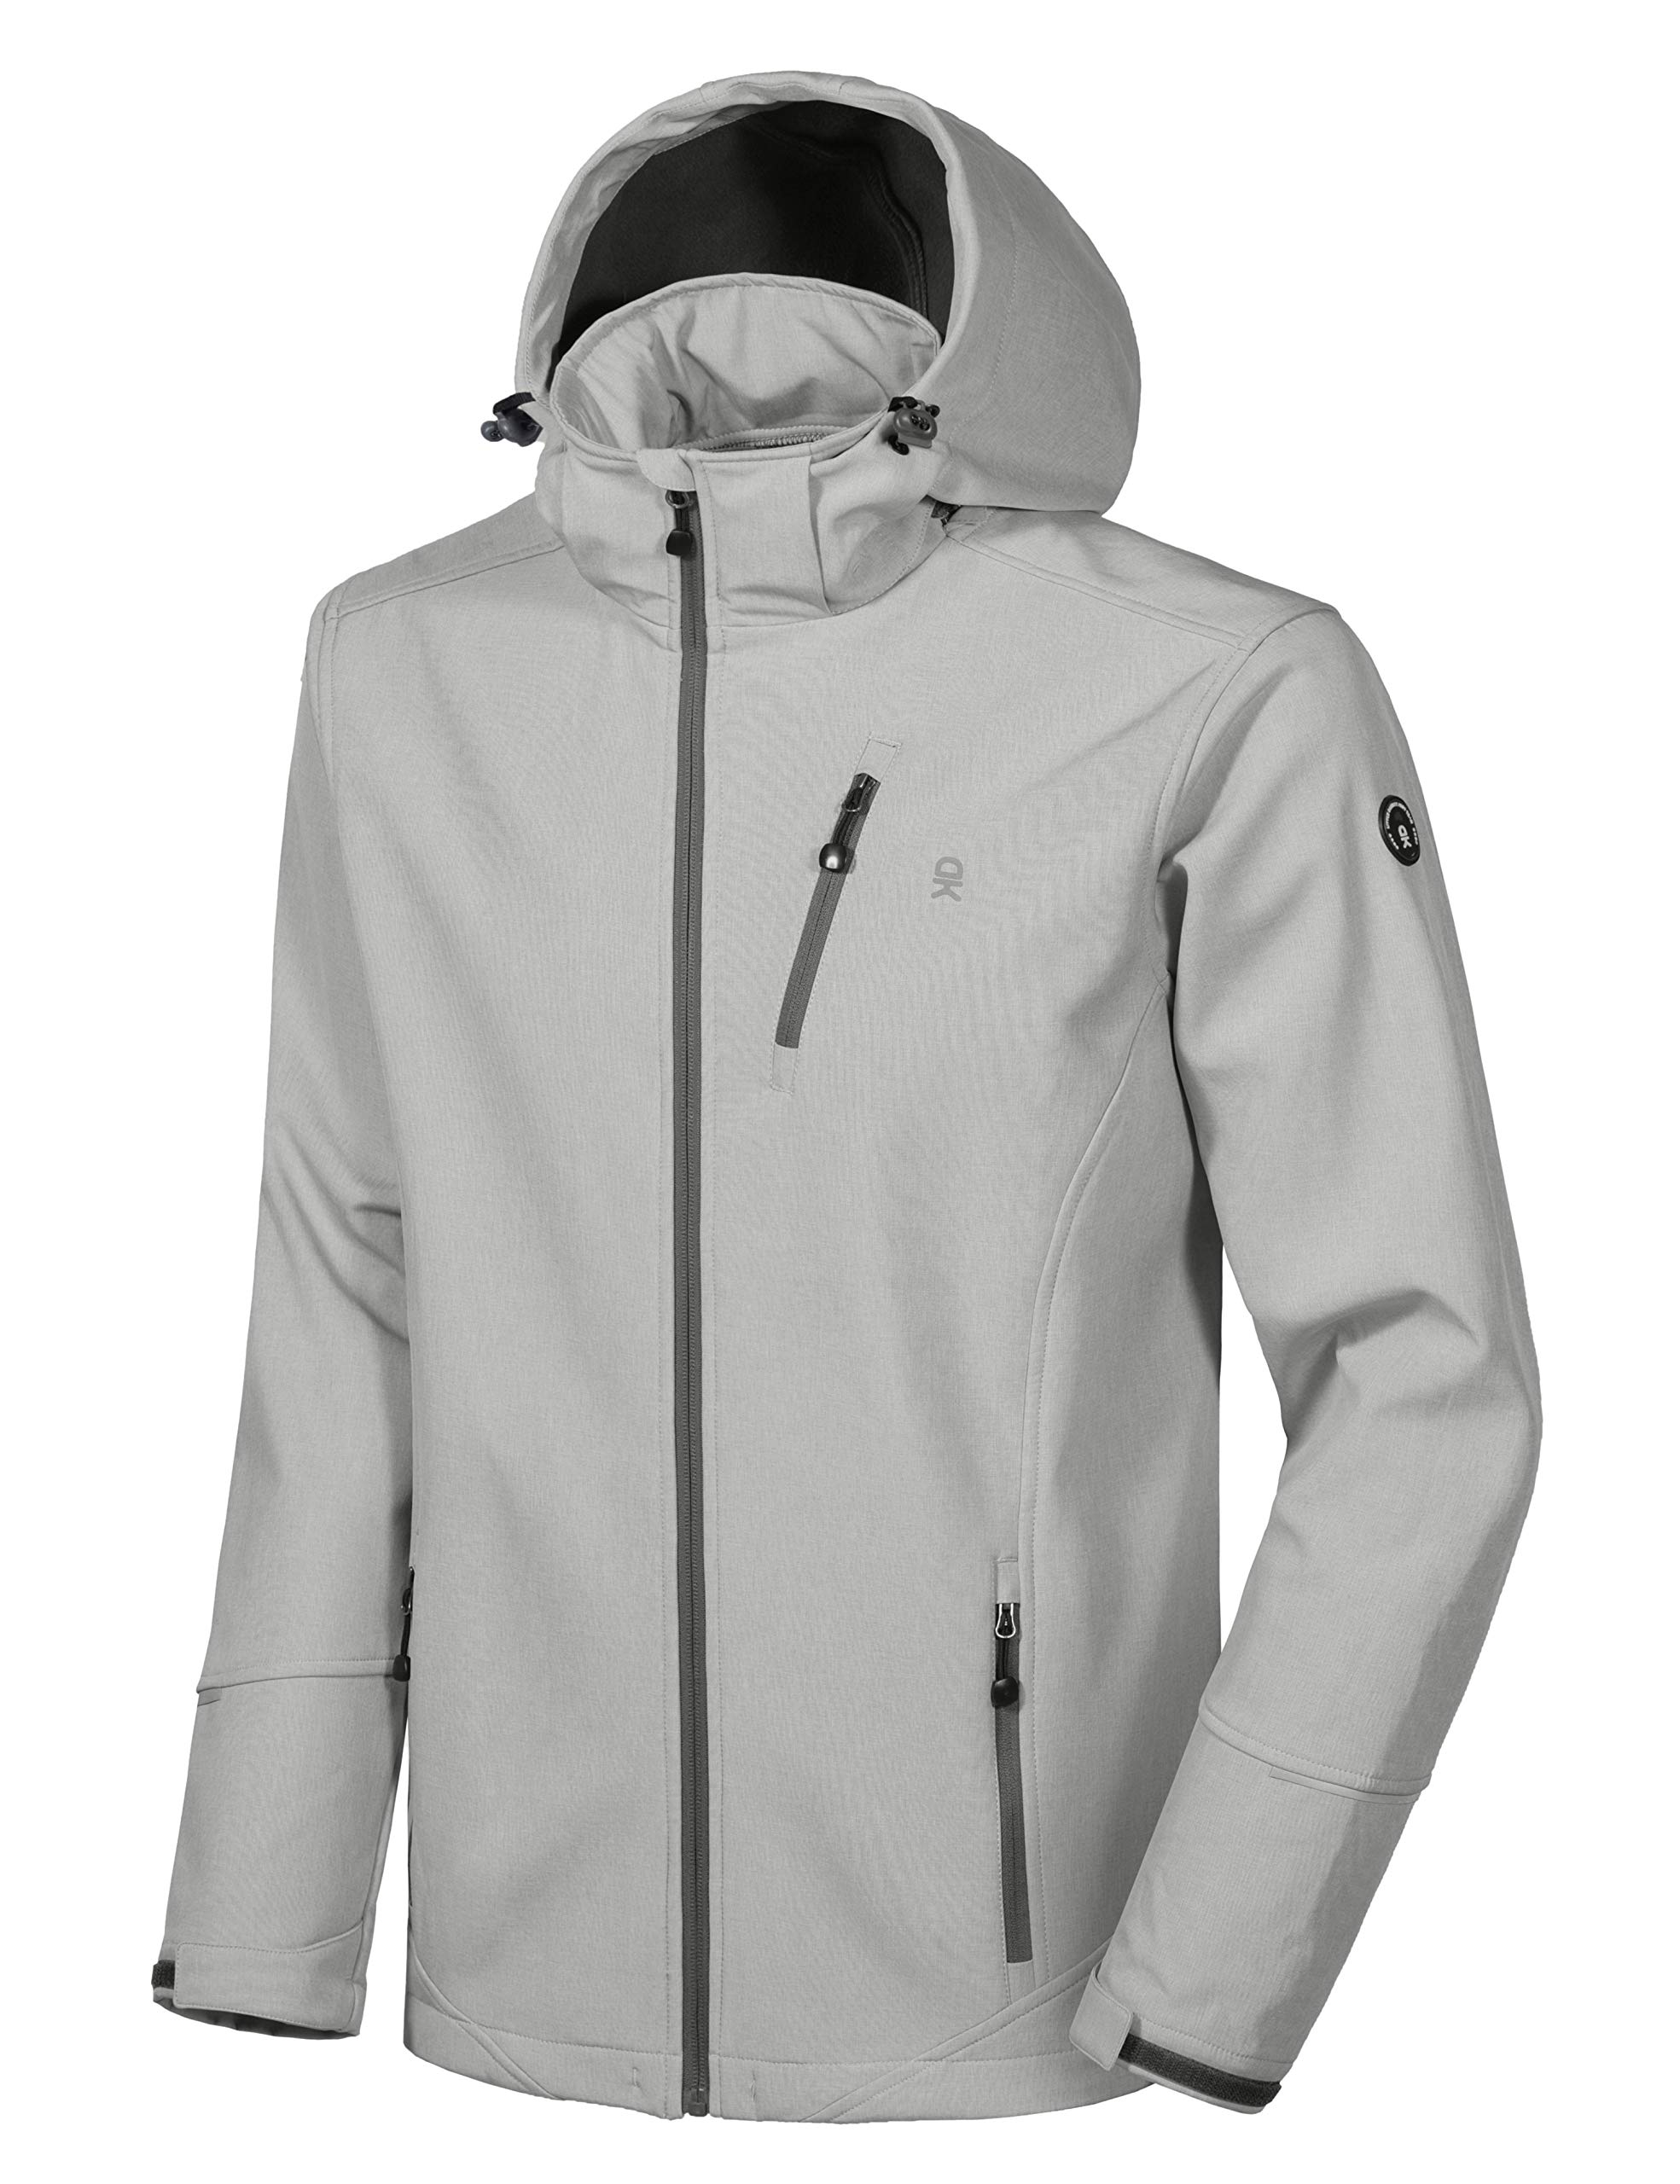 Little Donkey Andy Men's Softshell Jacket Ski Jacket with Removable Hood, Fleece Lined and Water Repellent